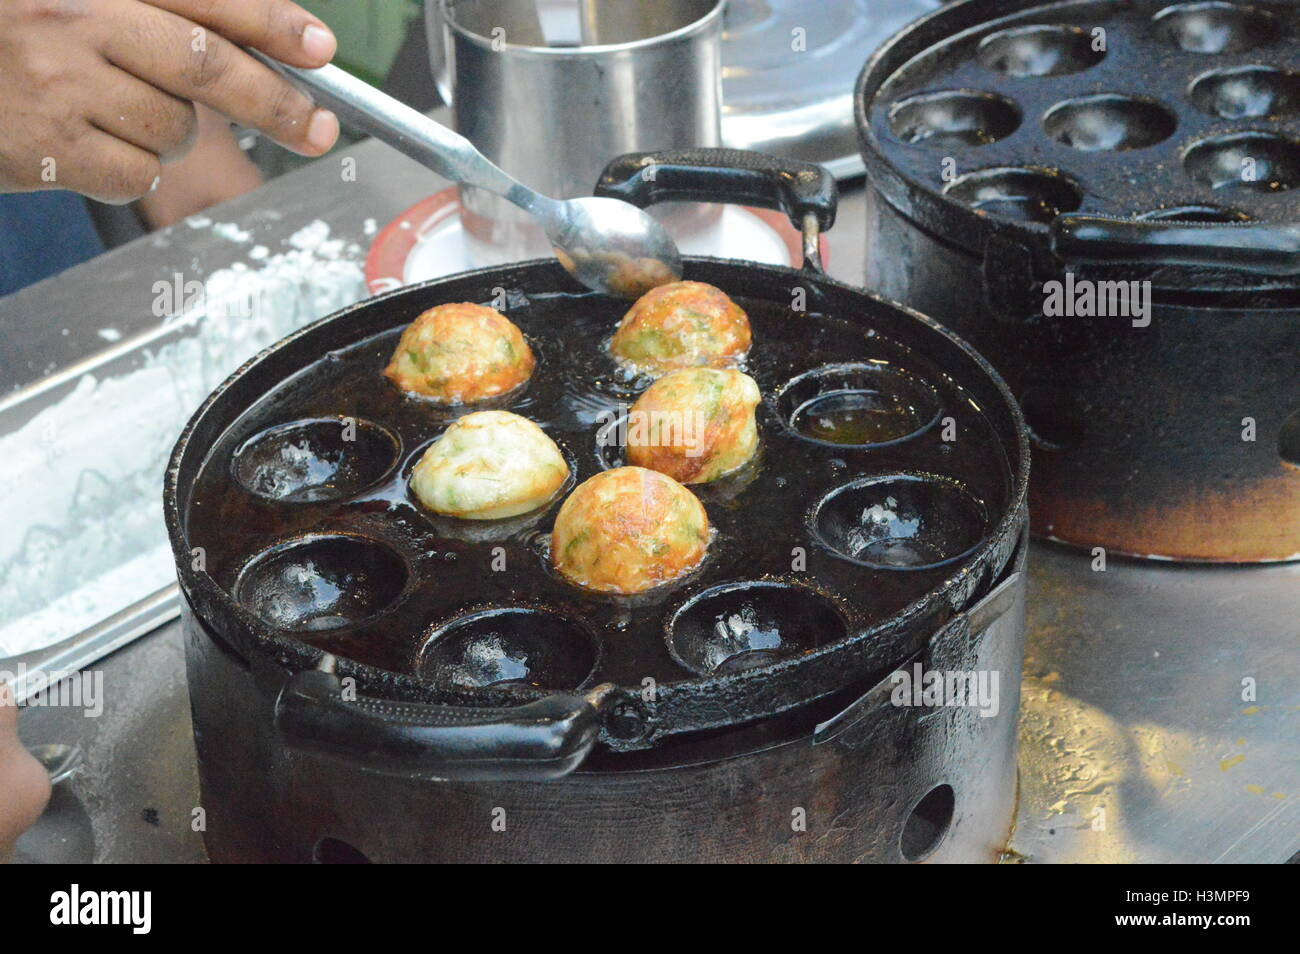 A local street food joint  in a market in bangalore india - Stock Image